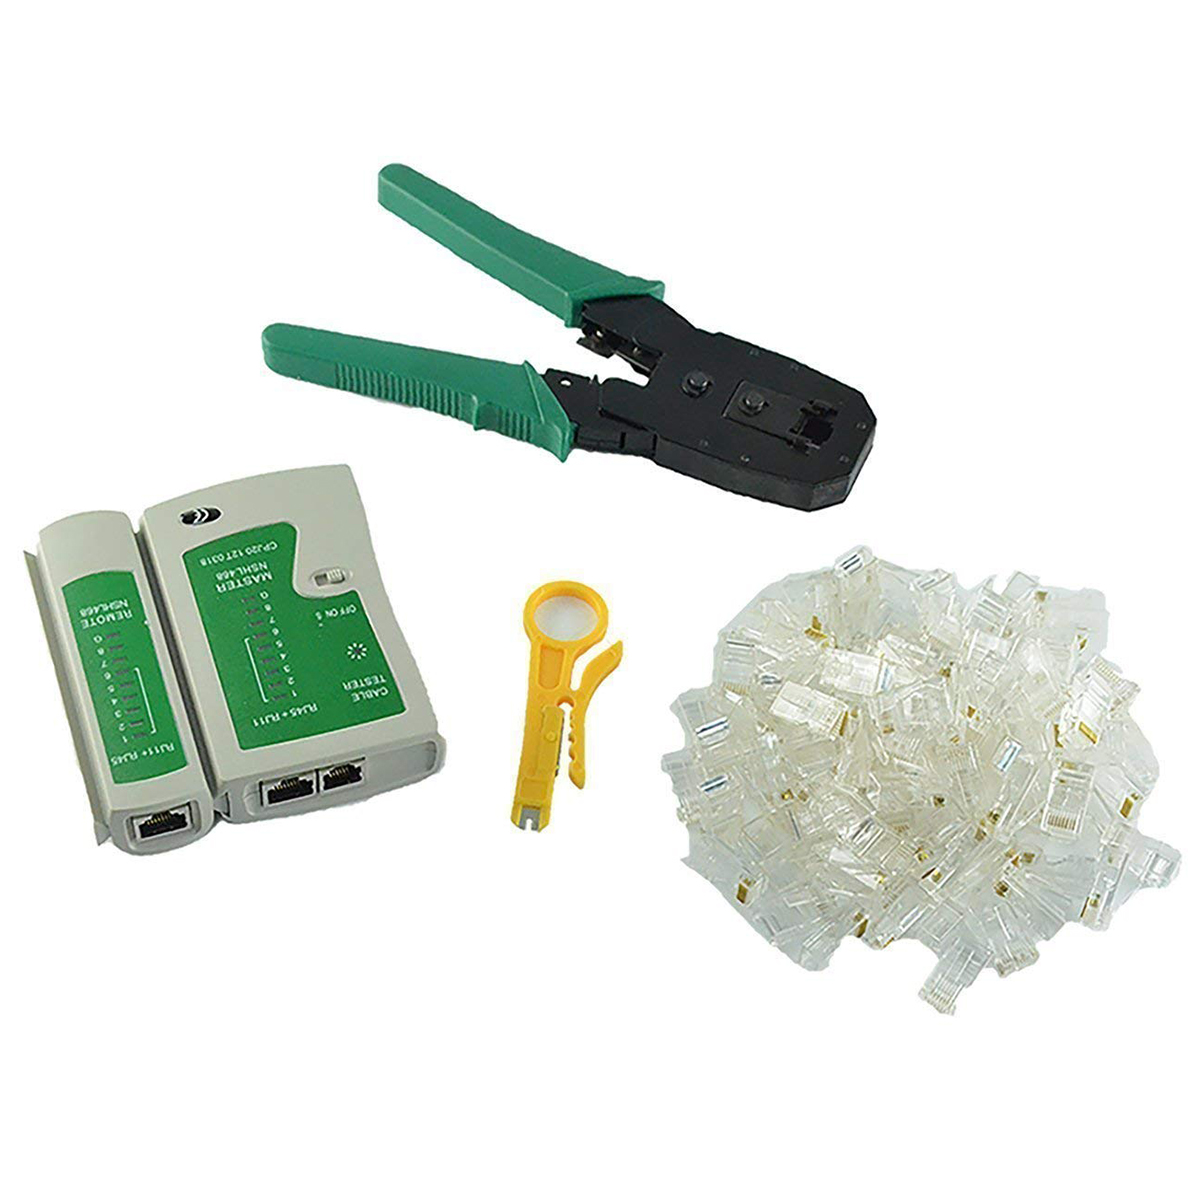 Network Ethernet LAN Kit 4 in 1 Cable Tester Crimping Plier Crimper Wire Stripper 100x Rj45 Cat5 Cat5e Connector Plug NetworkNetwork Ethernet LAN Kit 4 in 1 Cable Tester Crimping Plier Crimper Wire Stripper 100x Rj45 Cat5 Cat5e Connector Plug Network